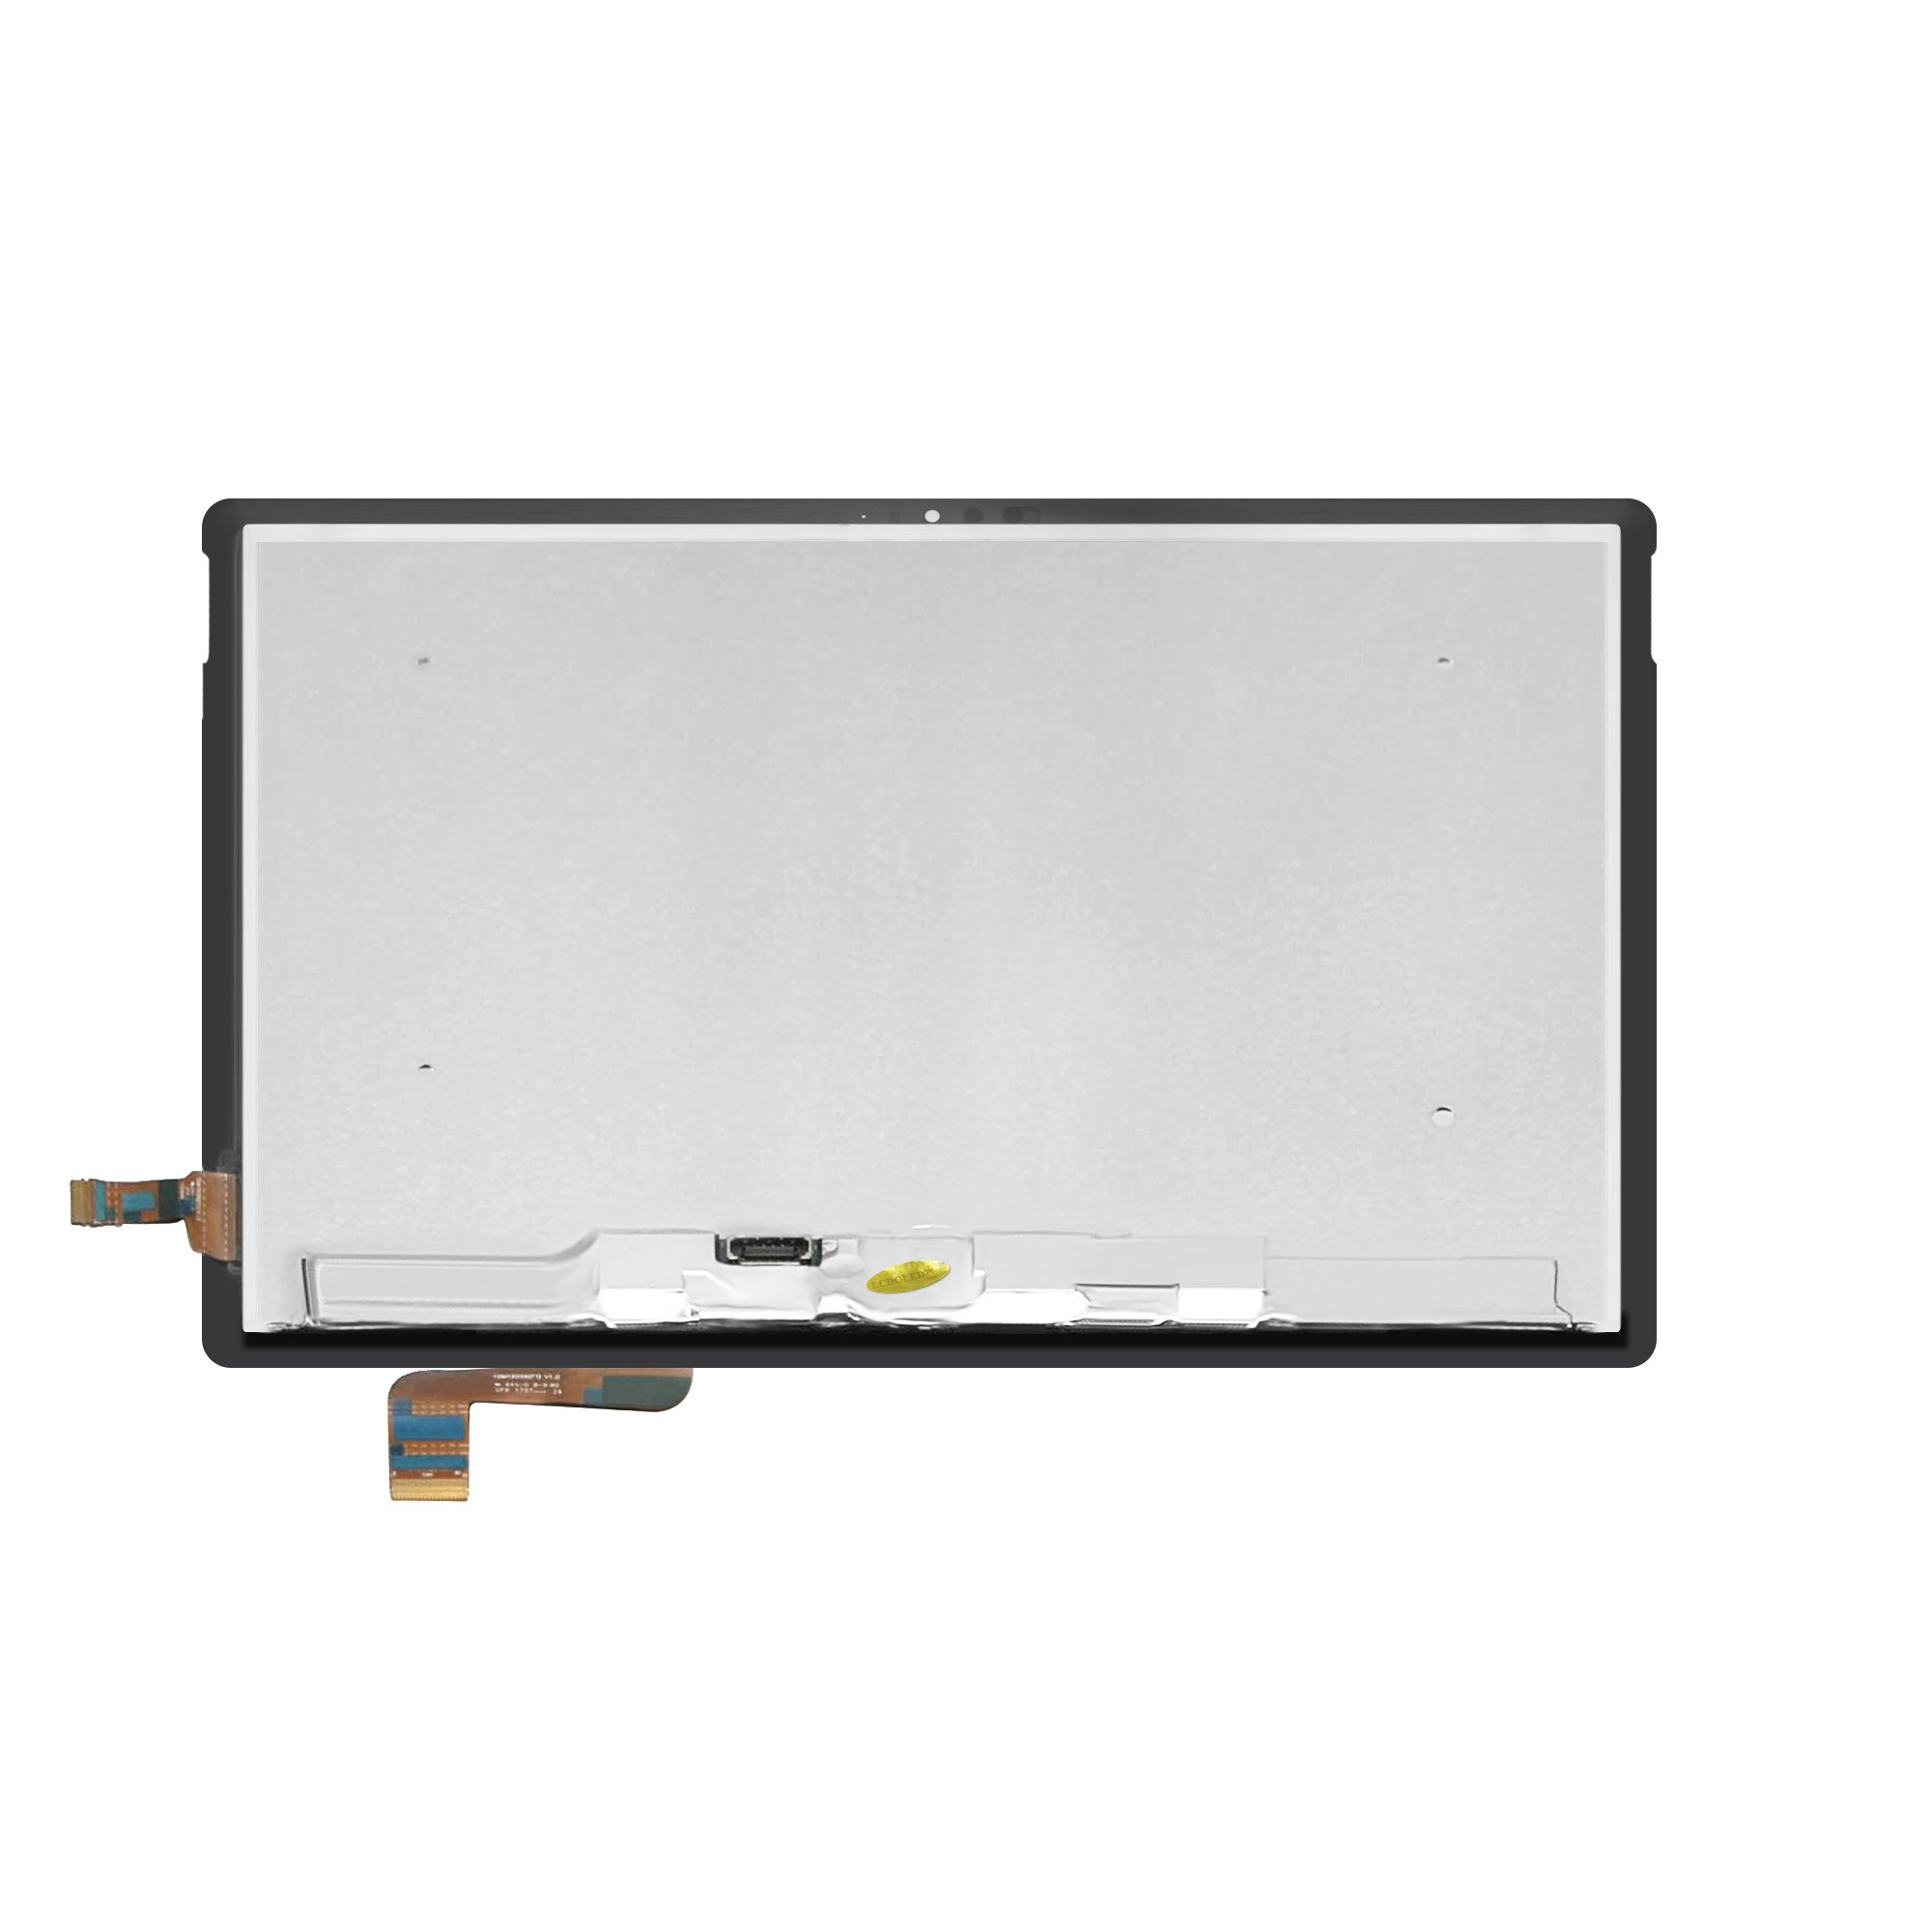 LCDOLED Compatible 13.5 inch 3000x2000 IPS LED LCD Display Touch Screen Digitizer Assembly Replacement for Microsoft Surface Book 2 1803 1806 1832 1834 1835 (NOT for 15 inch) by LCDOLED (Image #2)